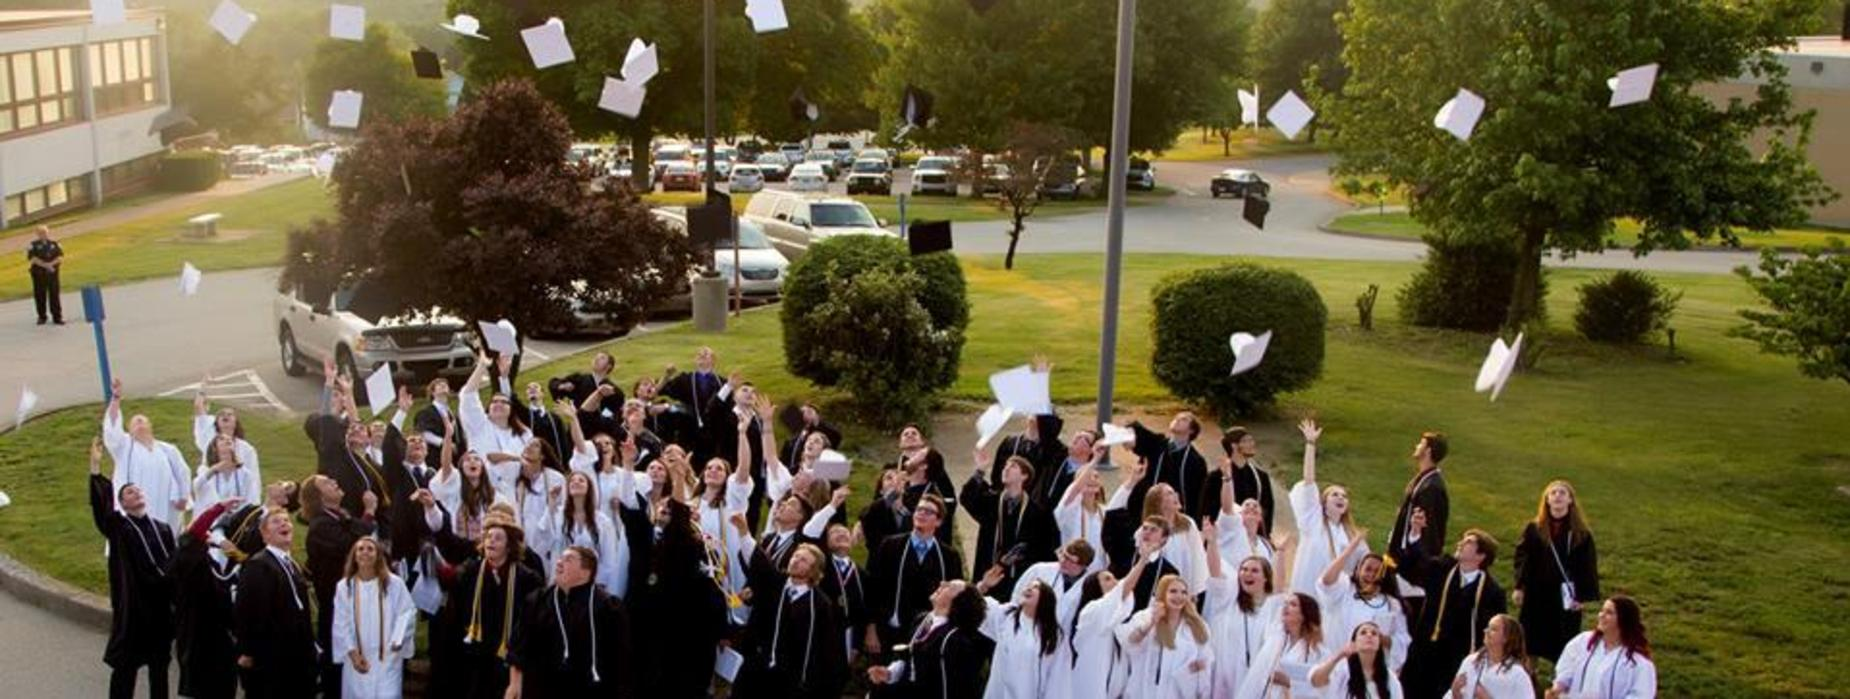 2018 Graduates Outside Throwing their Caps in the Air